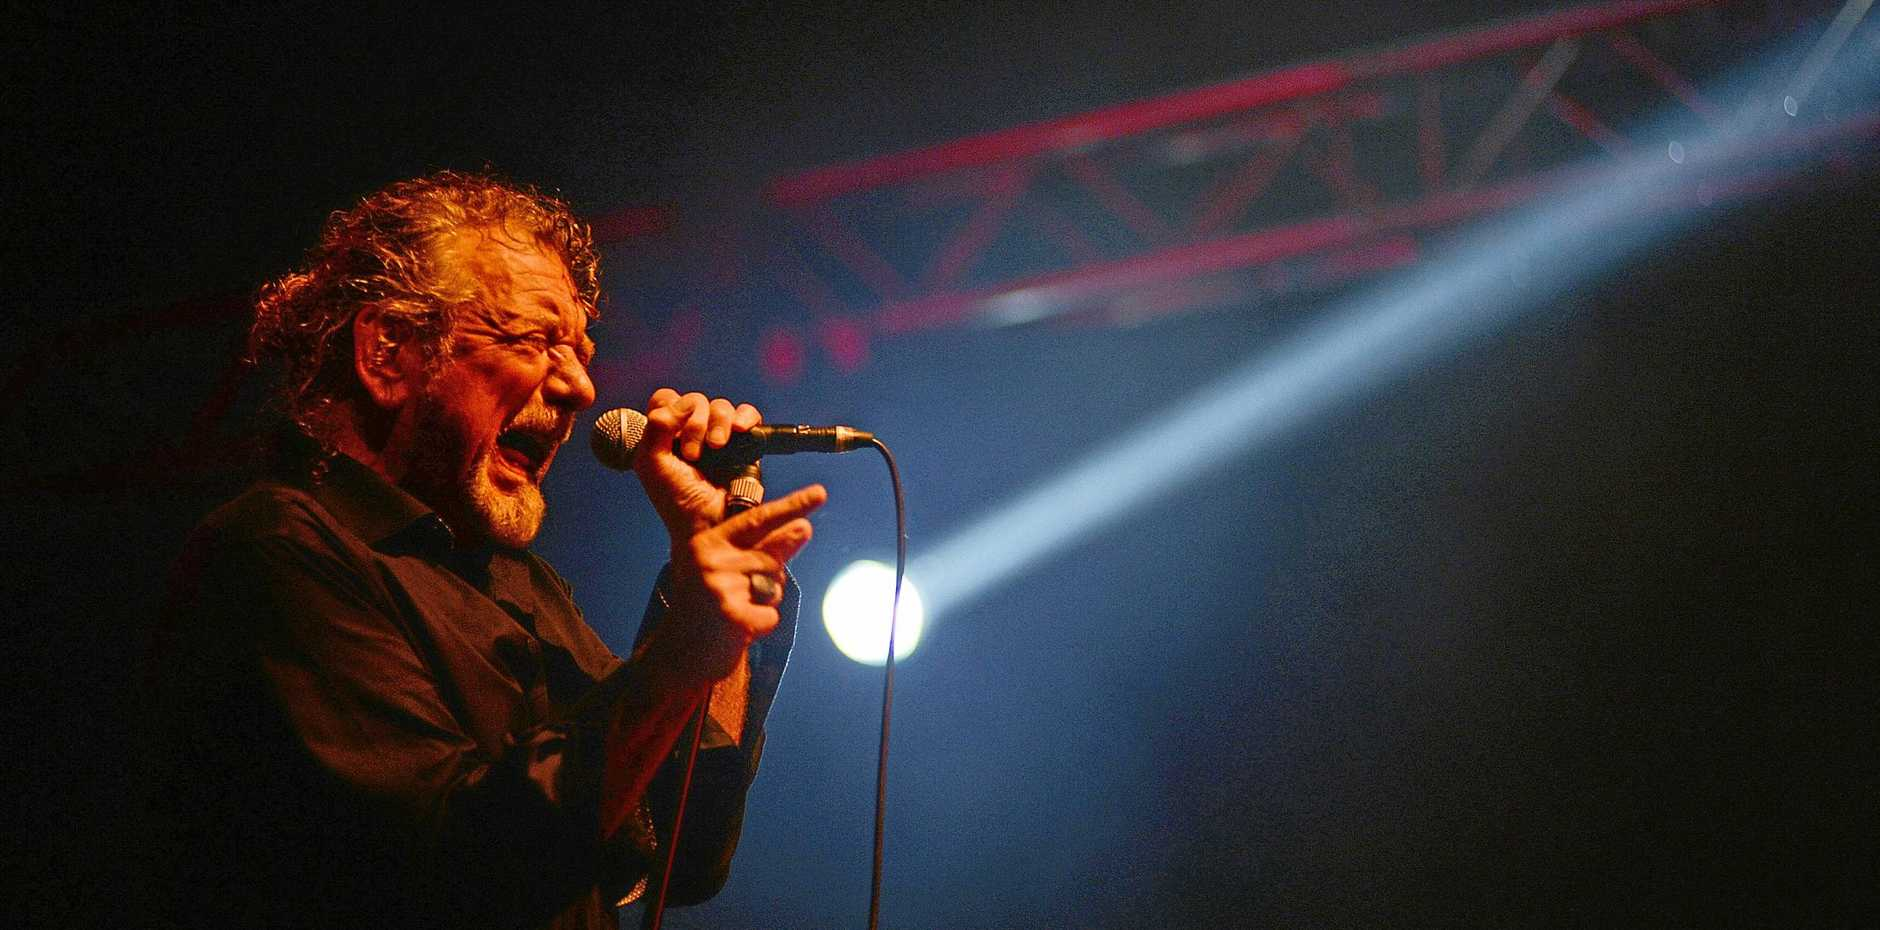 ICON: Former Led Zeppelin frontman Robert Plants performs during the third night of Bluesfest 2013.